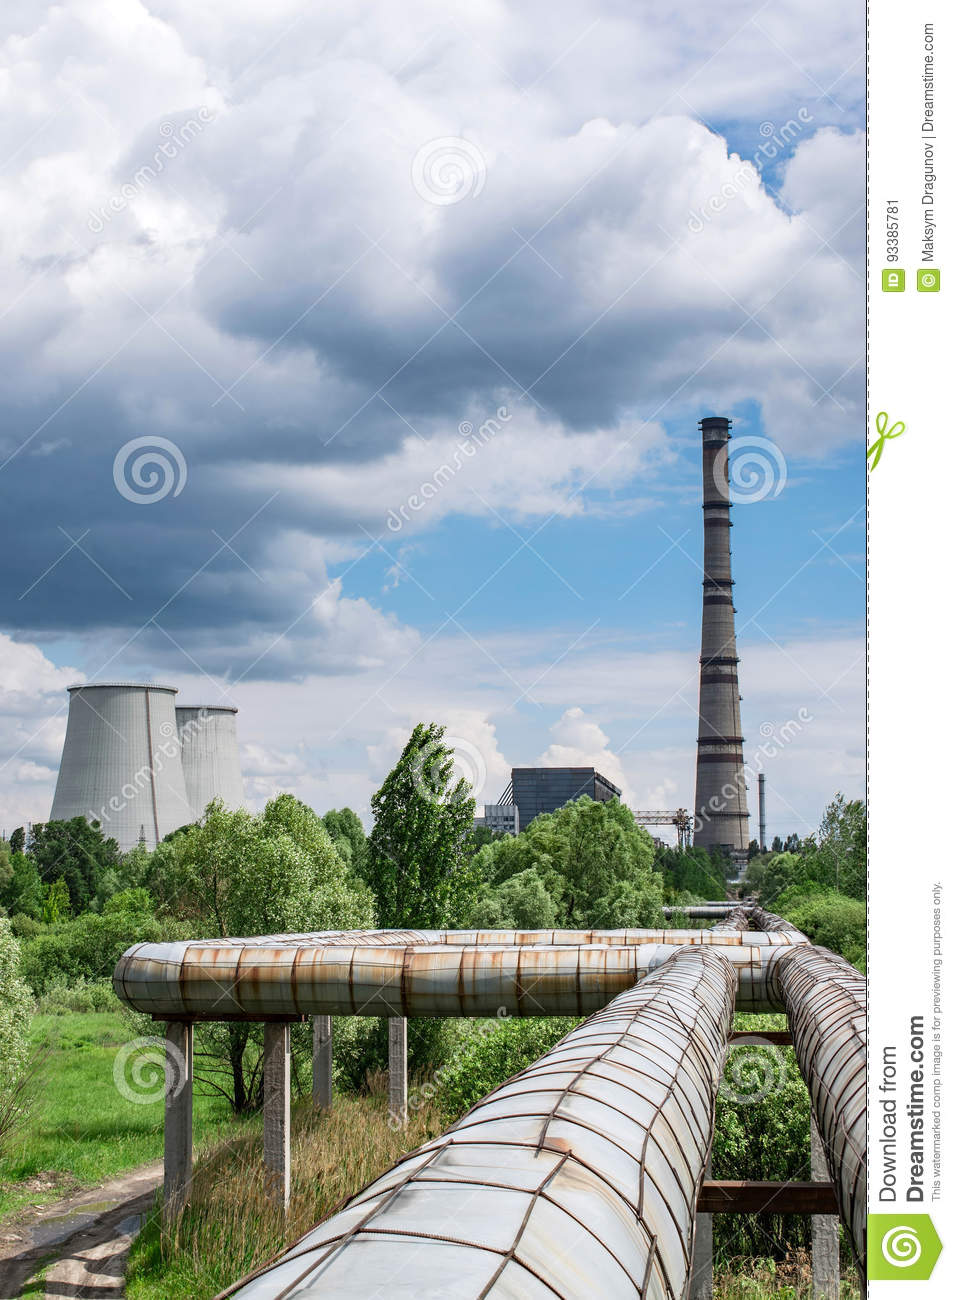 cogeneration plant Photo: a typical coal-fired power plant  cogeneration (the alternative name for chp) simply means that the electricity and heat are made at the same time.